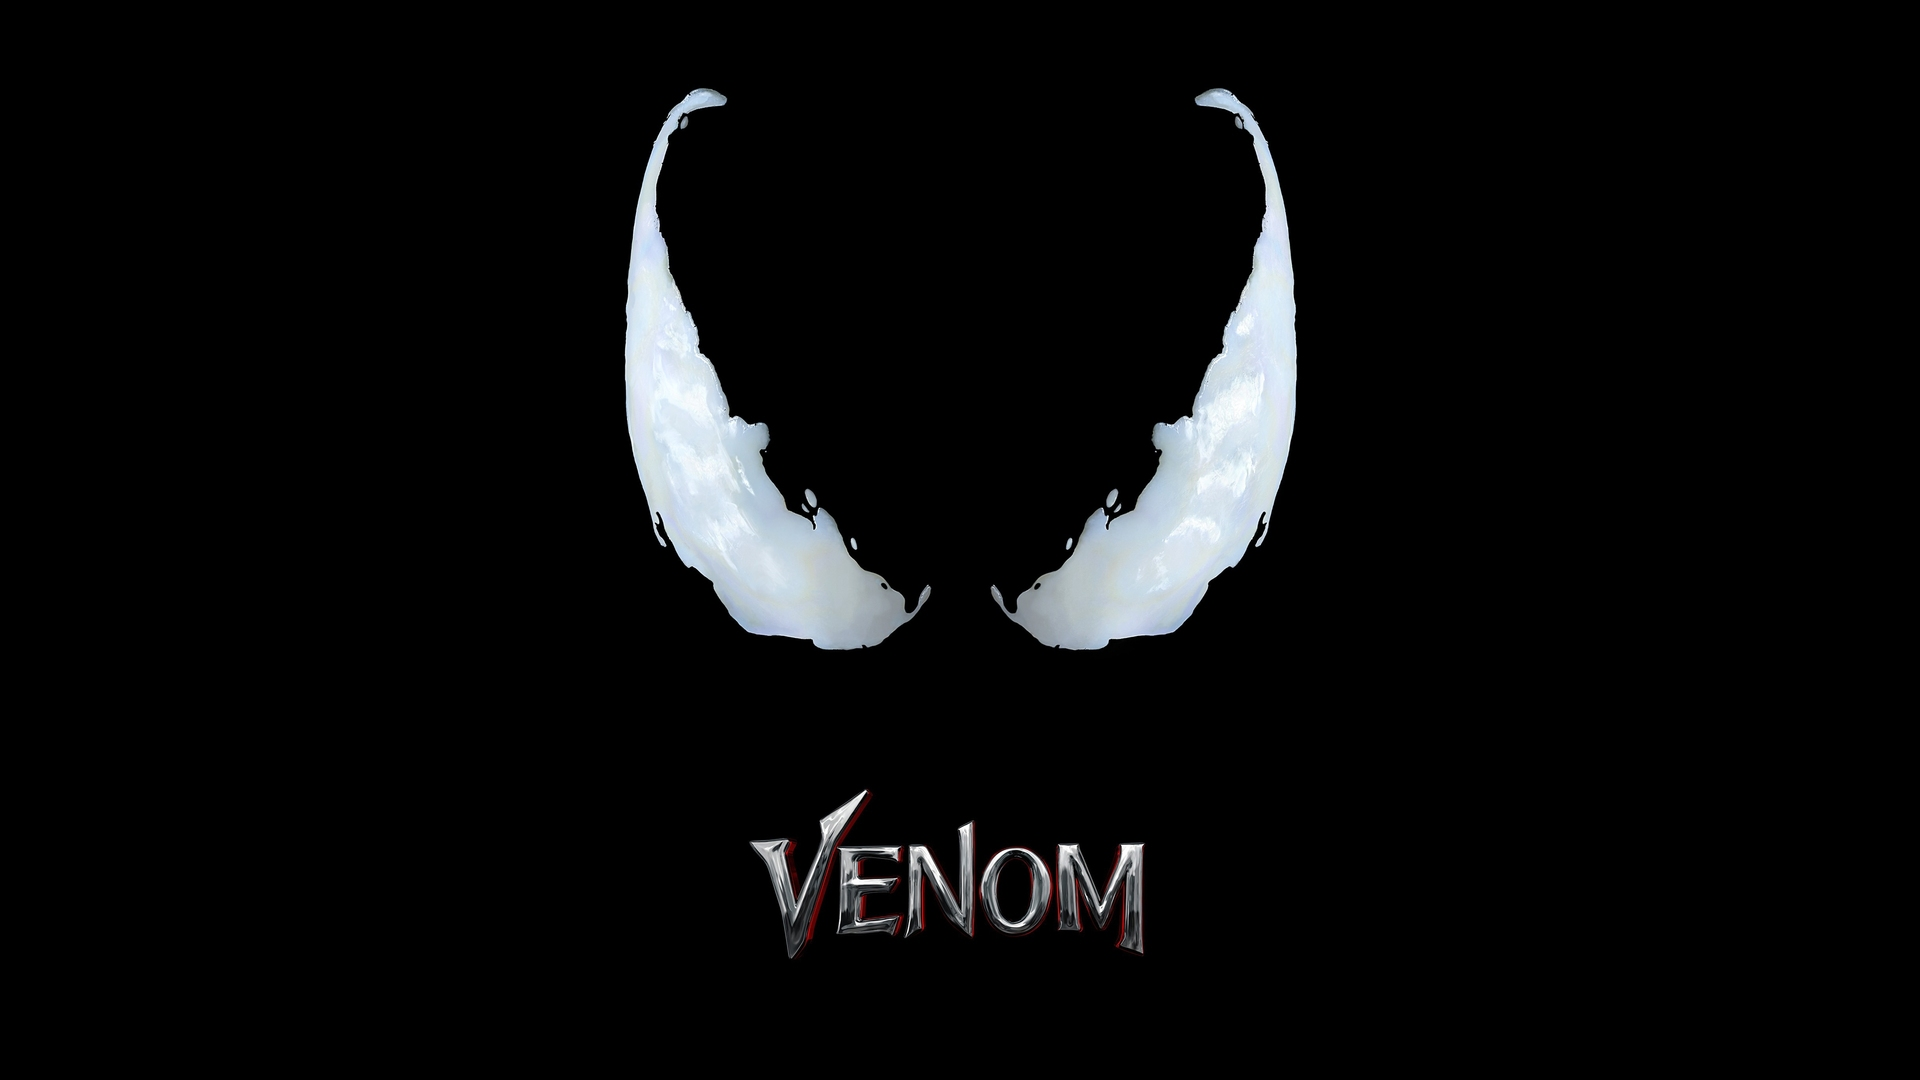 1920x1080 venom movie logo 4k laptop full hd 1080p hd 4k wallpapers